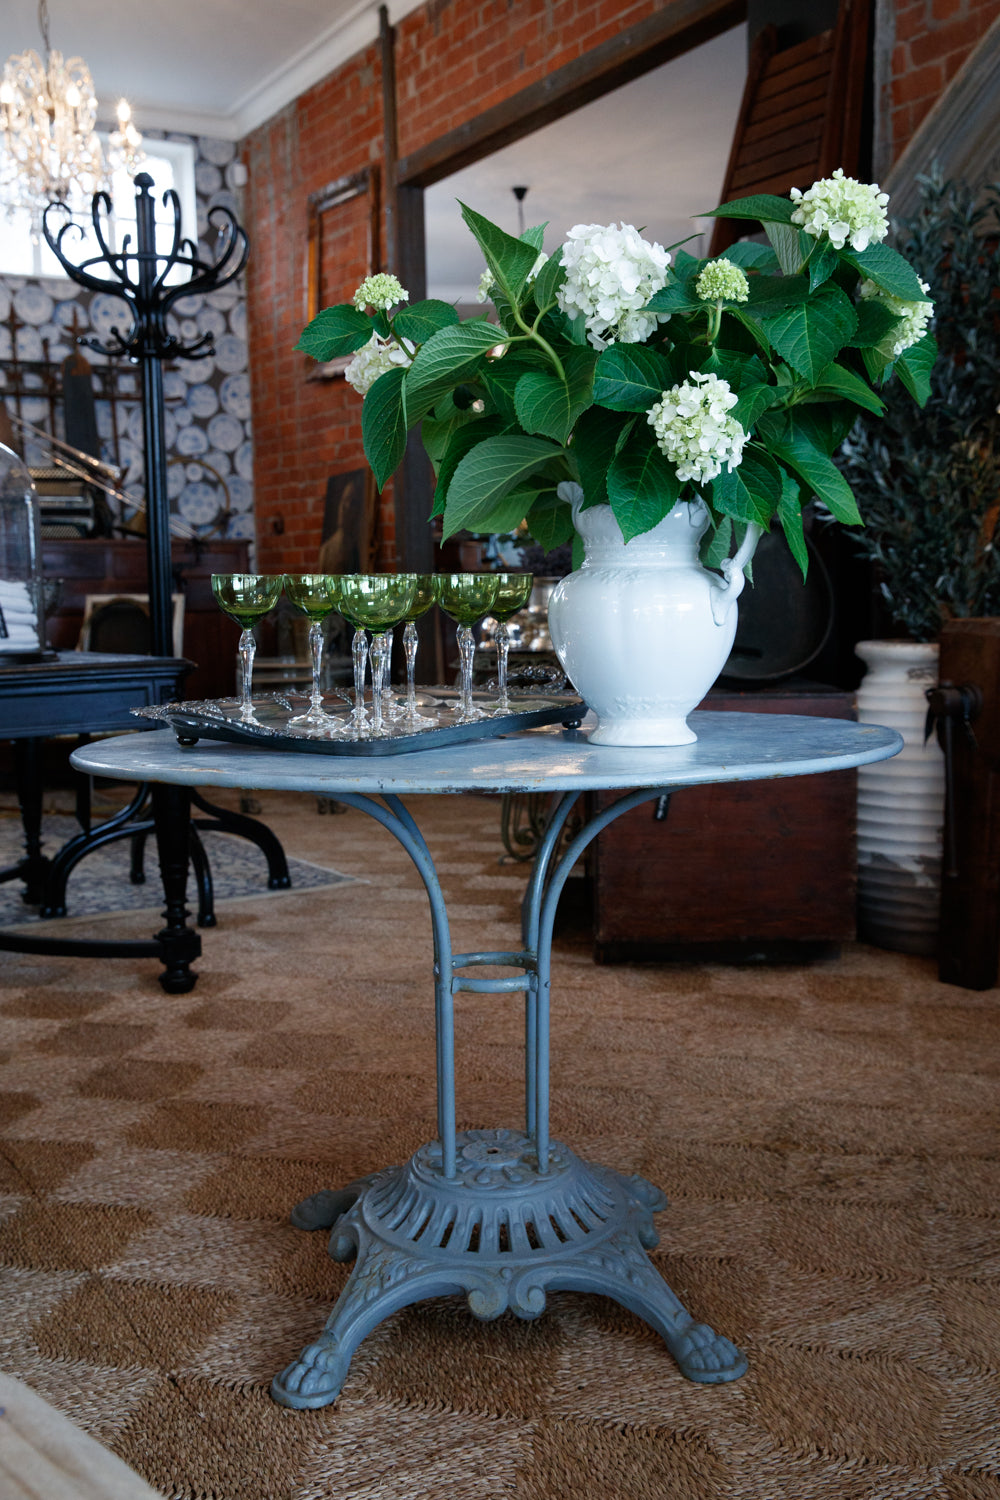 Vintage French Bleu Iron Garden Table